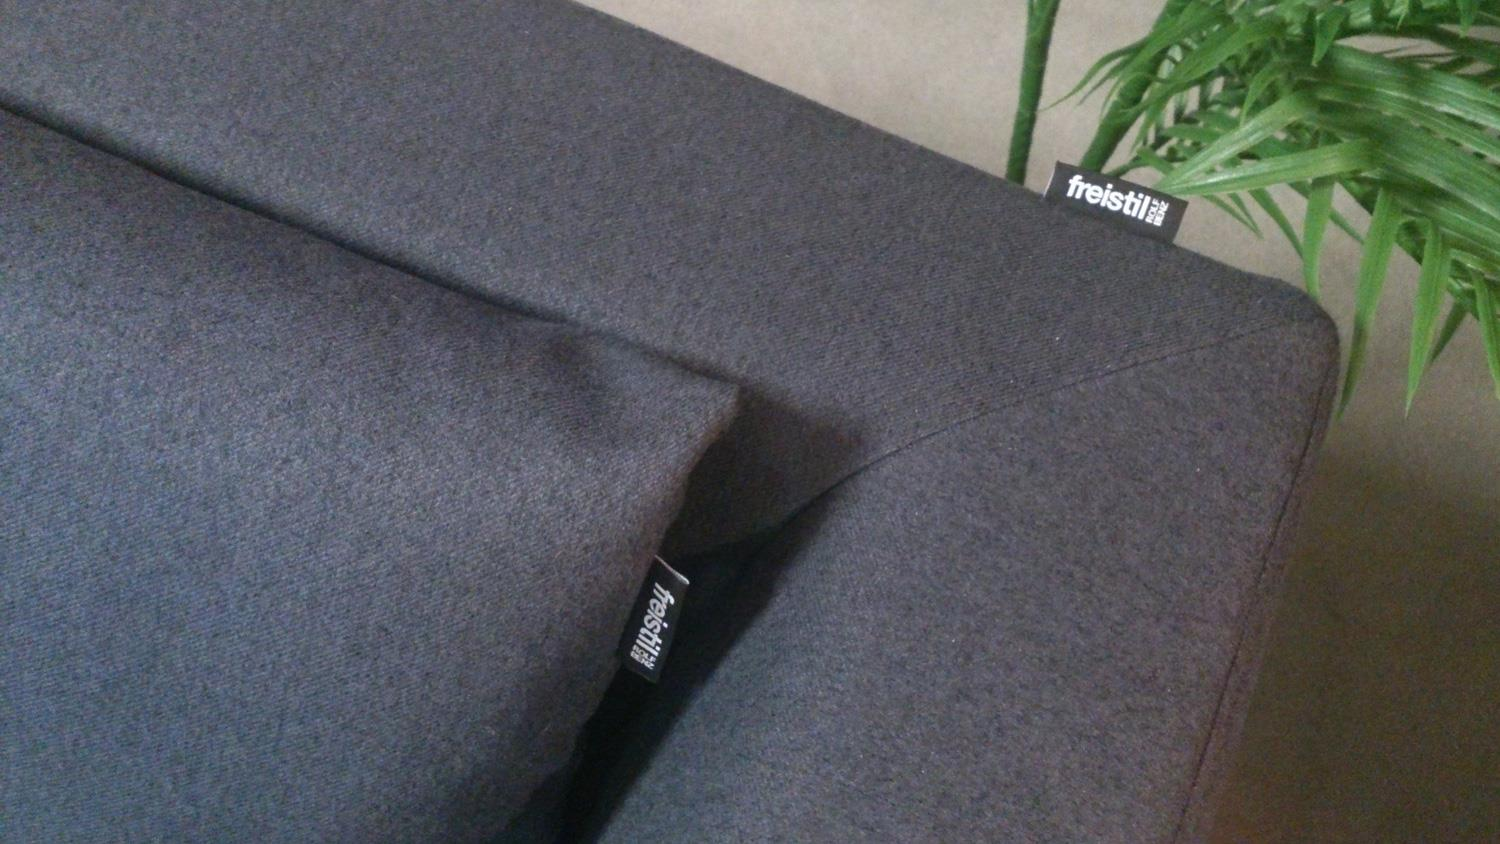 freistil 165 rolf benz ecksofa rechts flachgewebe schwarzgrau. Black Bedroom Furniture Sets. Home Design Ideas